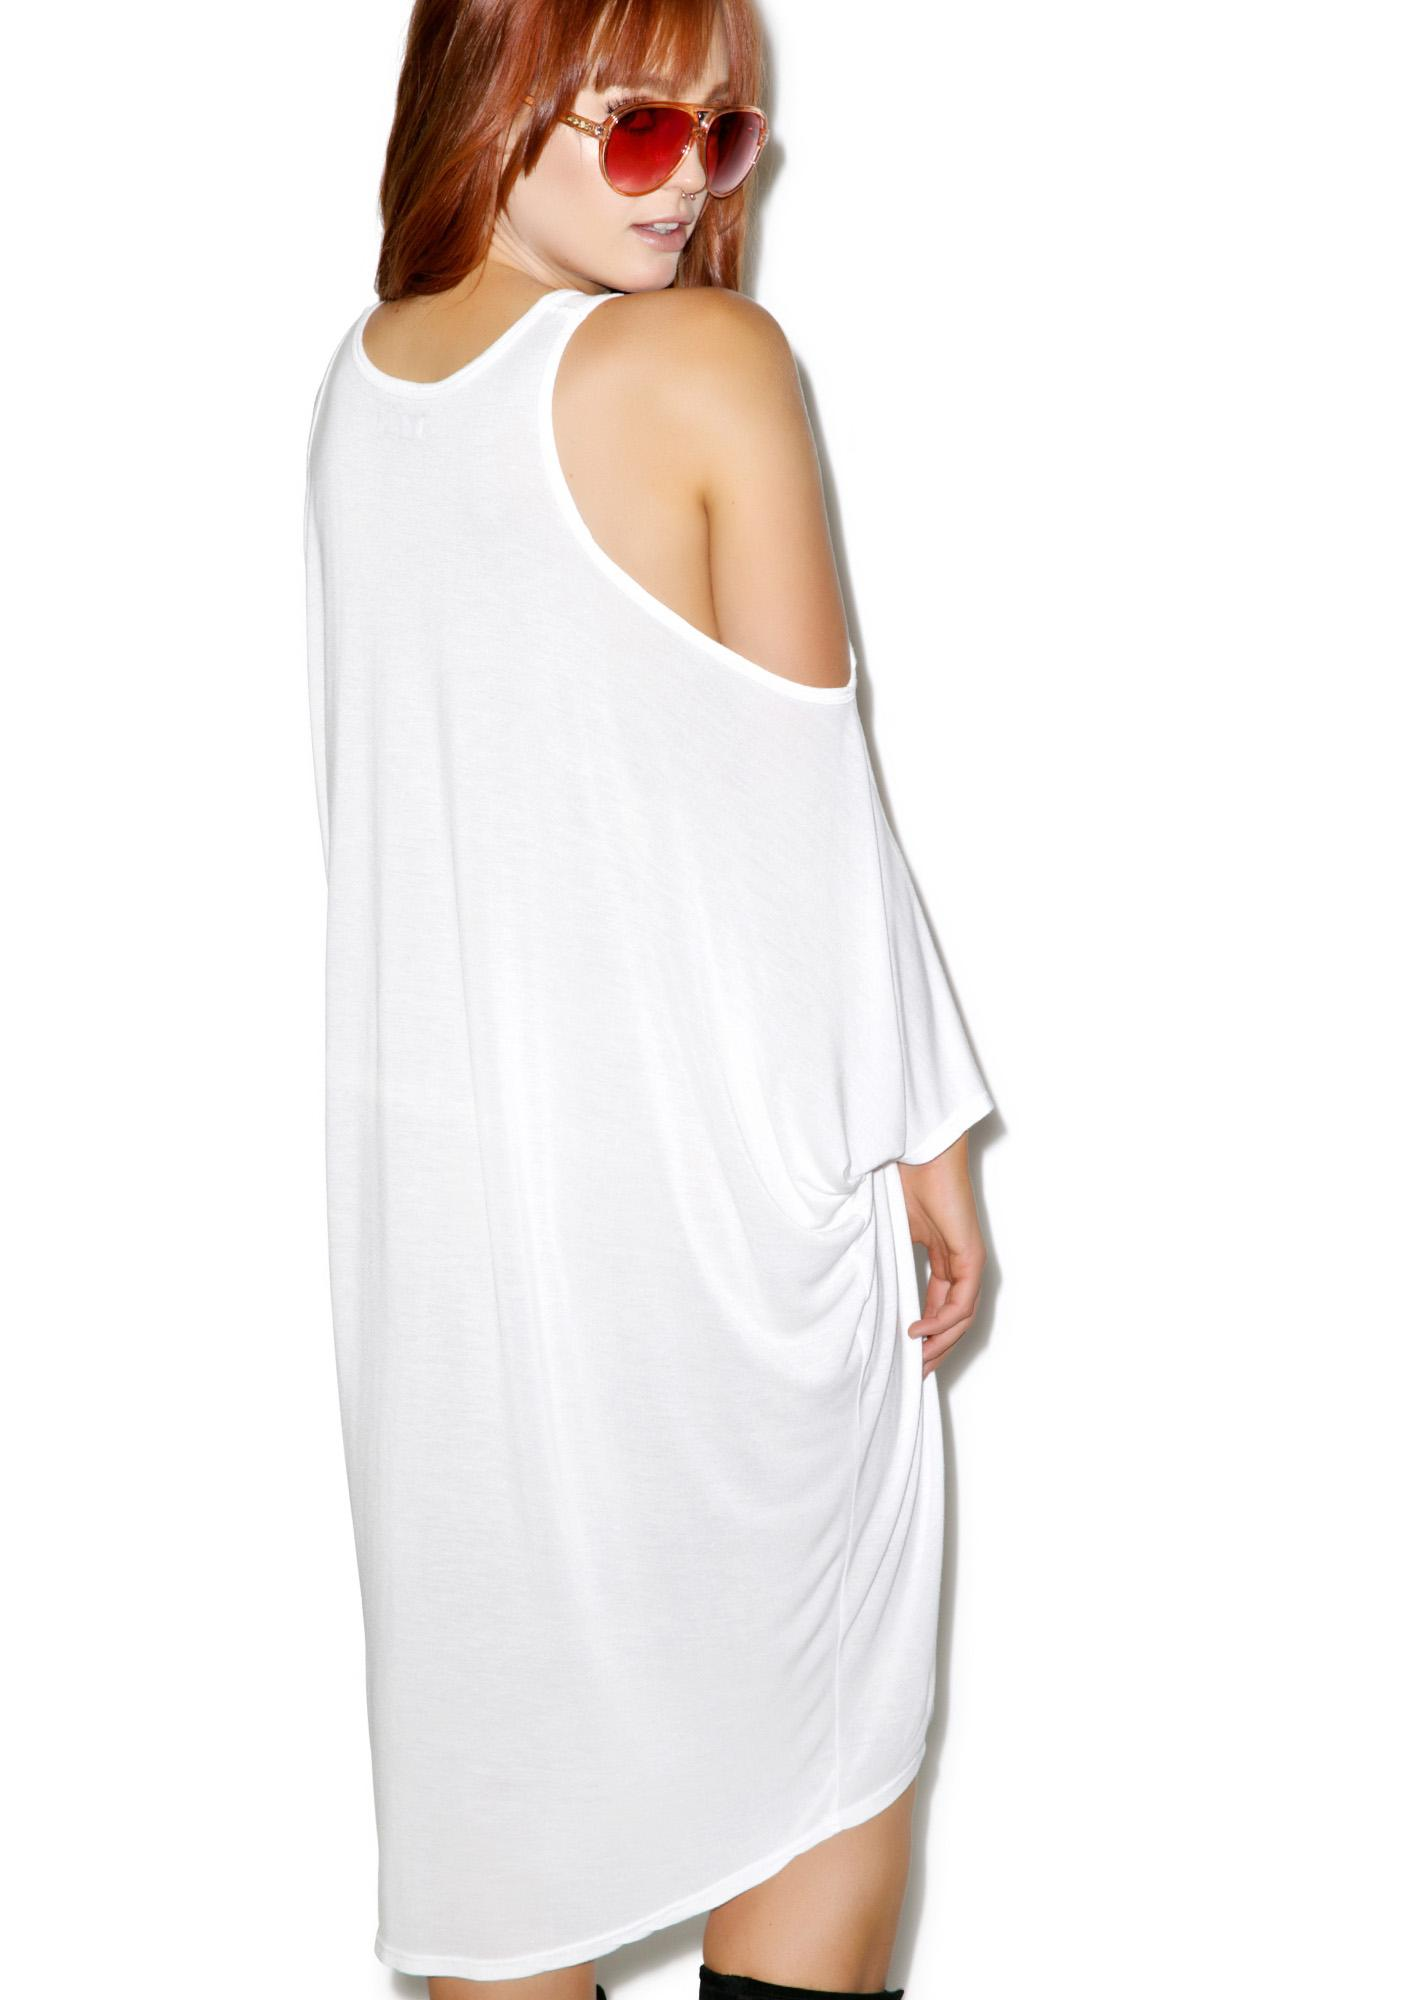 Lauren Moshi Gayle Open Shoulder Dress